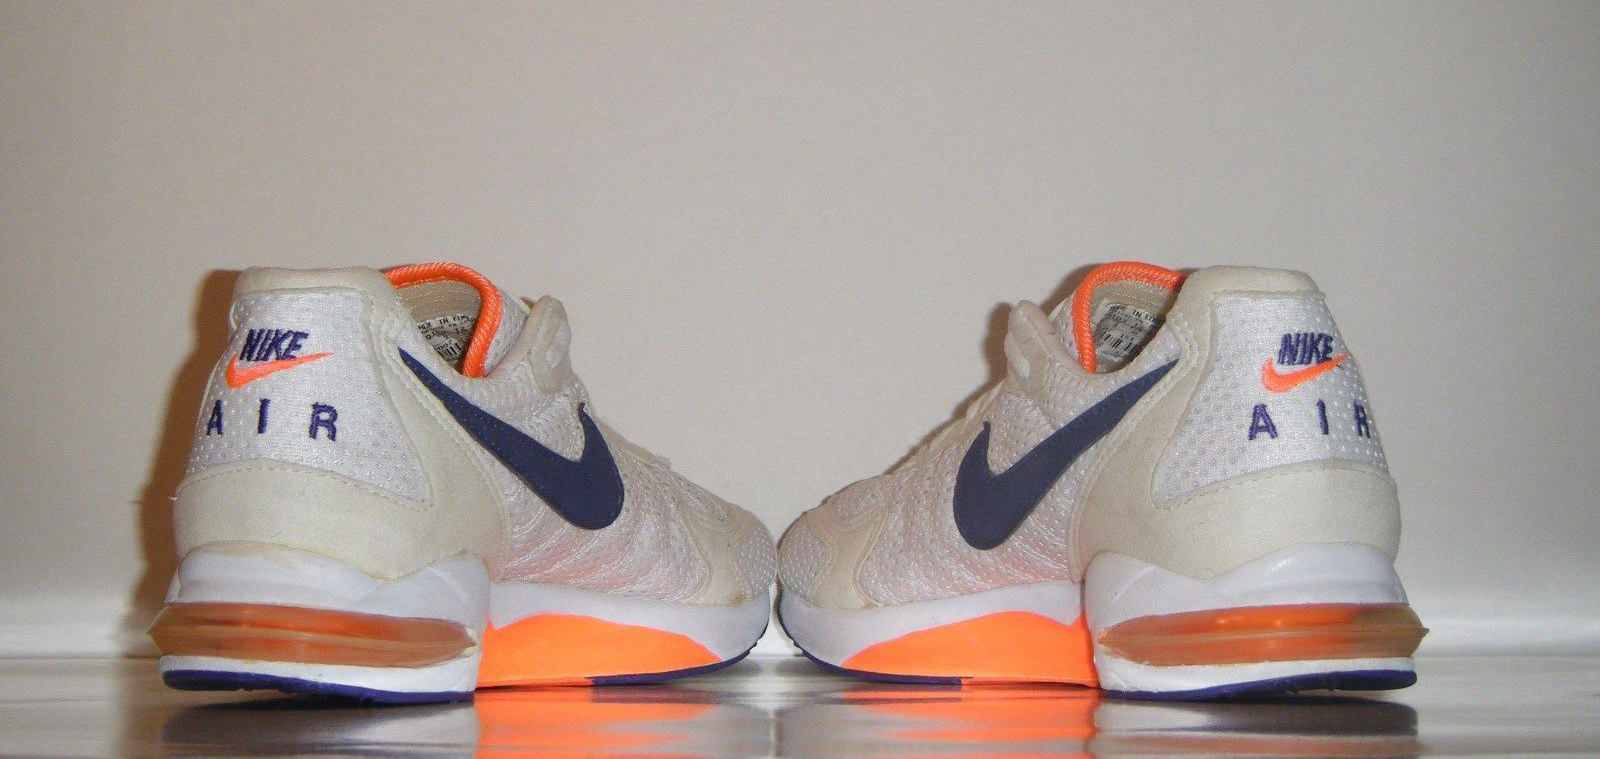 A At Forgotten Look Max Sole Model Collector Nike Air rgrSqnx